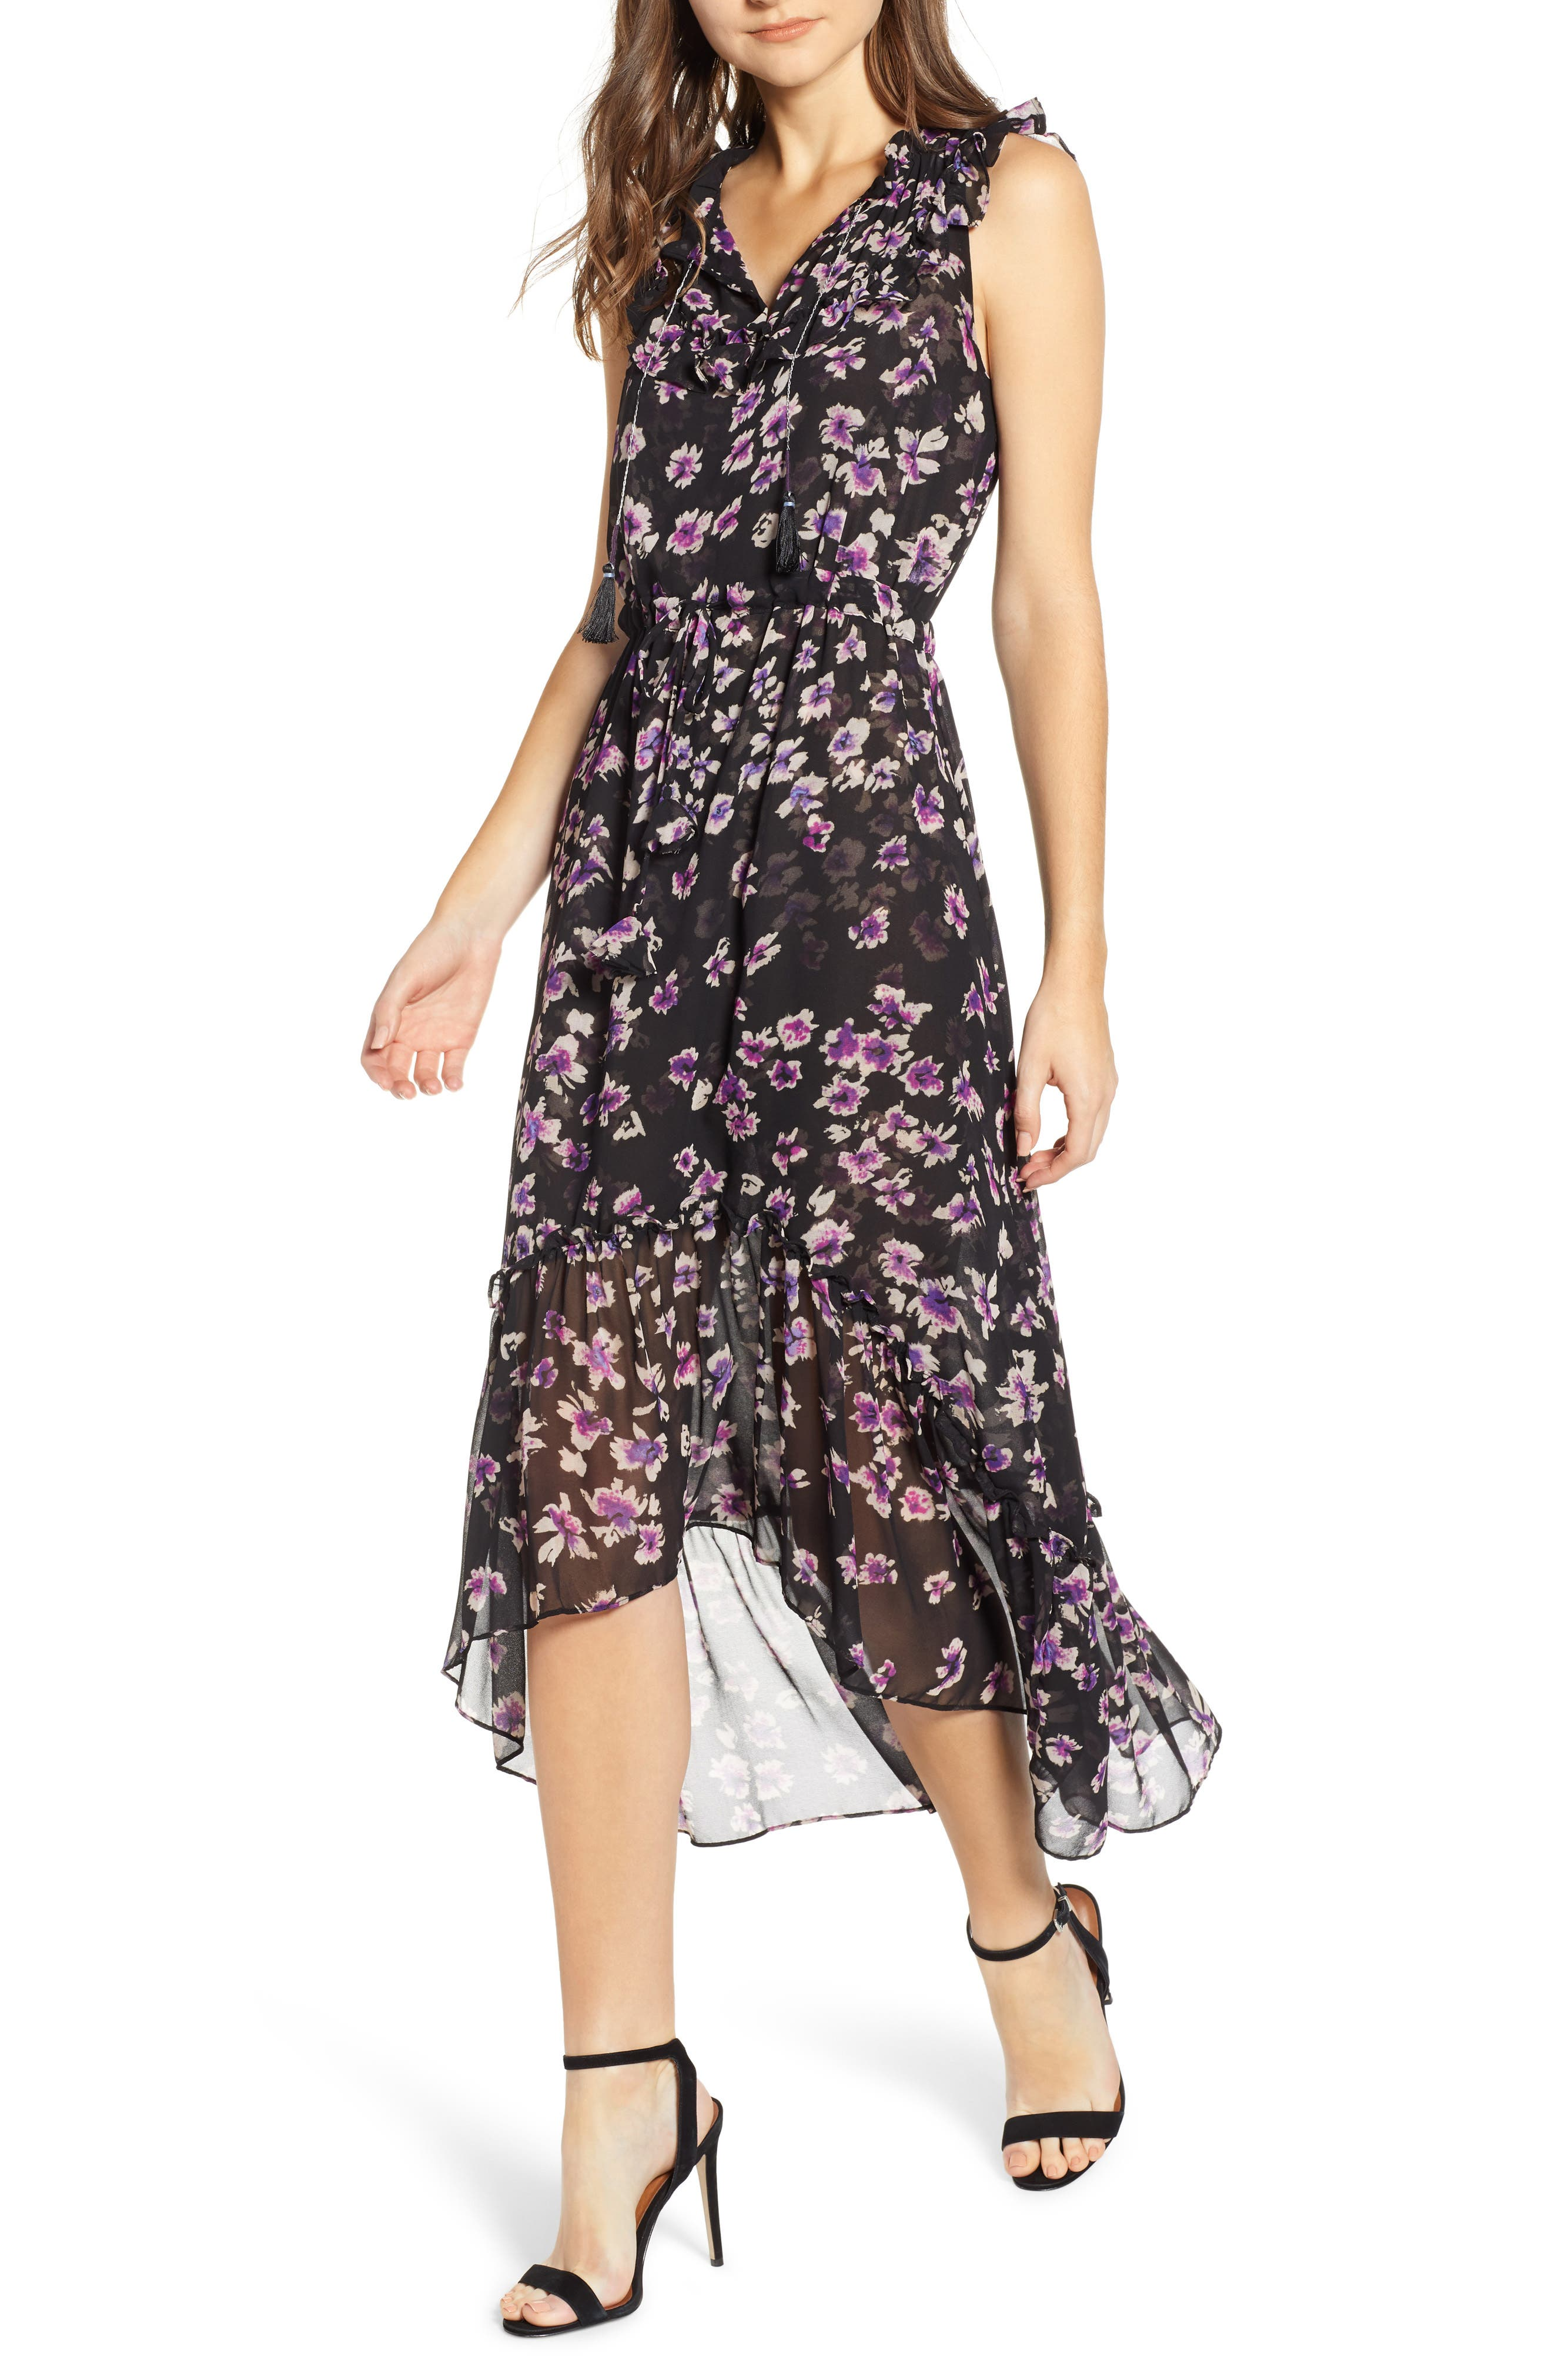 MISA LOS ANGELES Caterine Sleeveless High/Low Dress, Main, color, 009